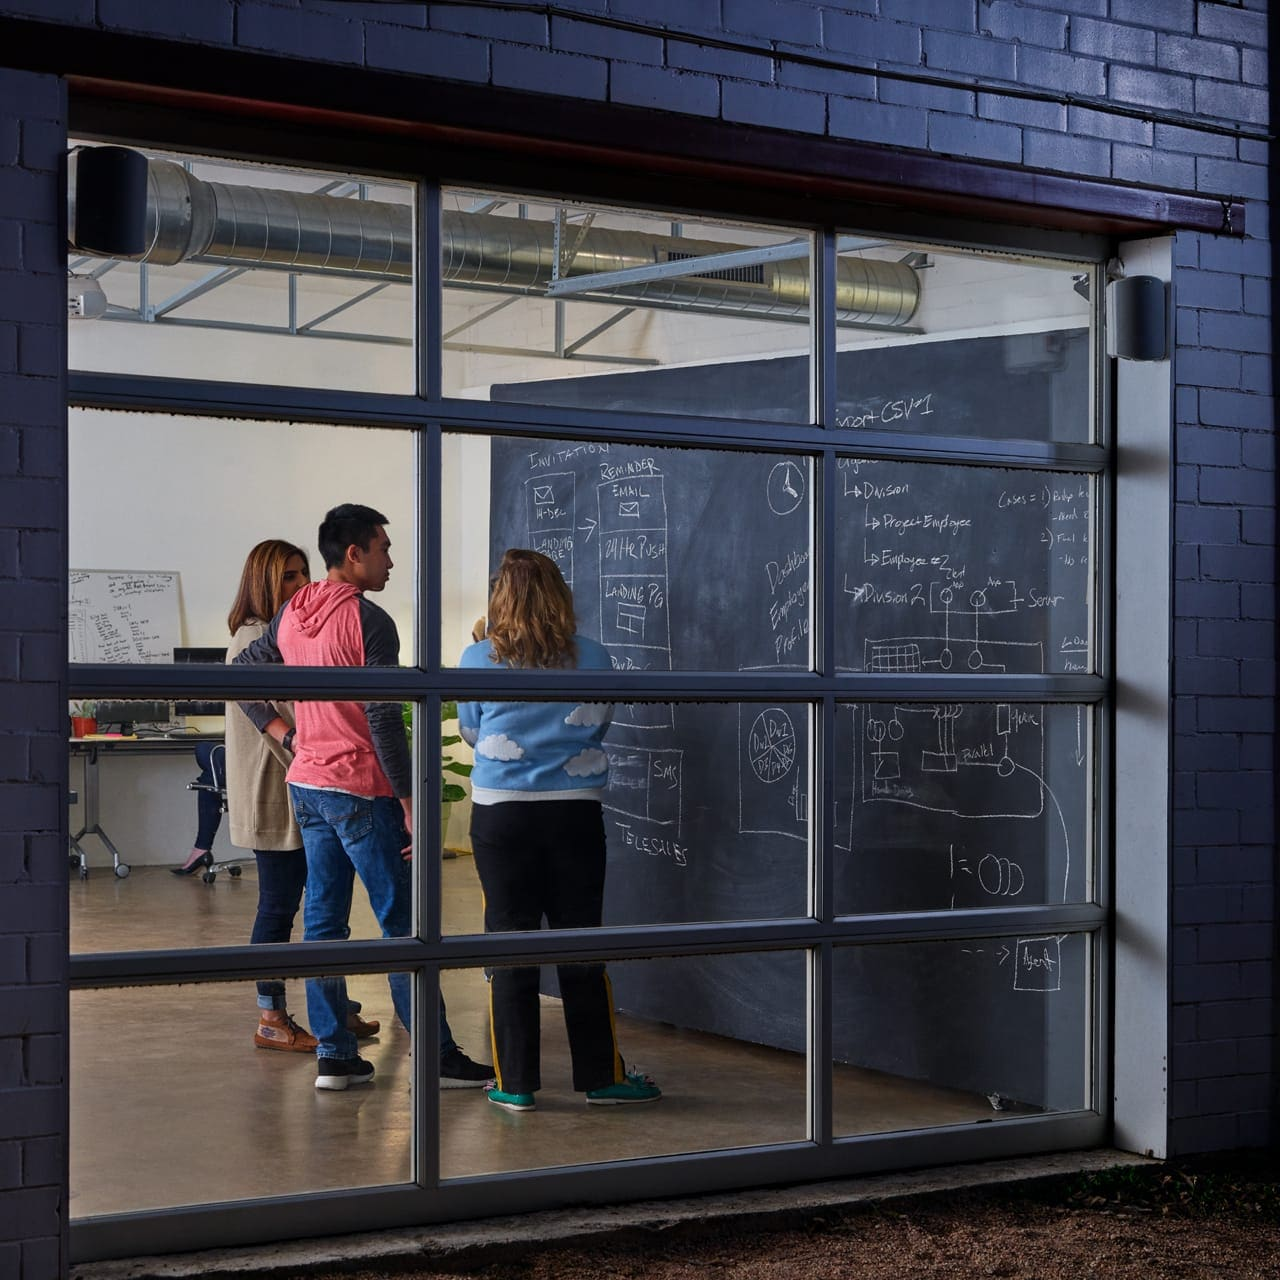 Image of a group of people writing on a chalkboard in a garage-like setting